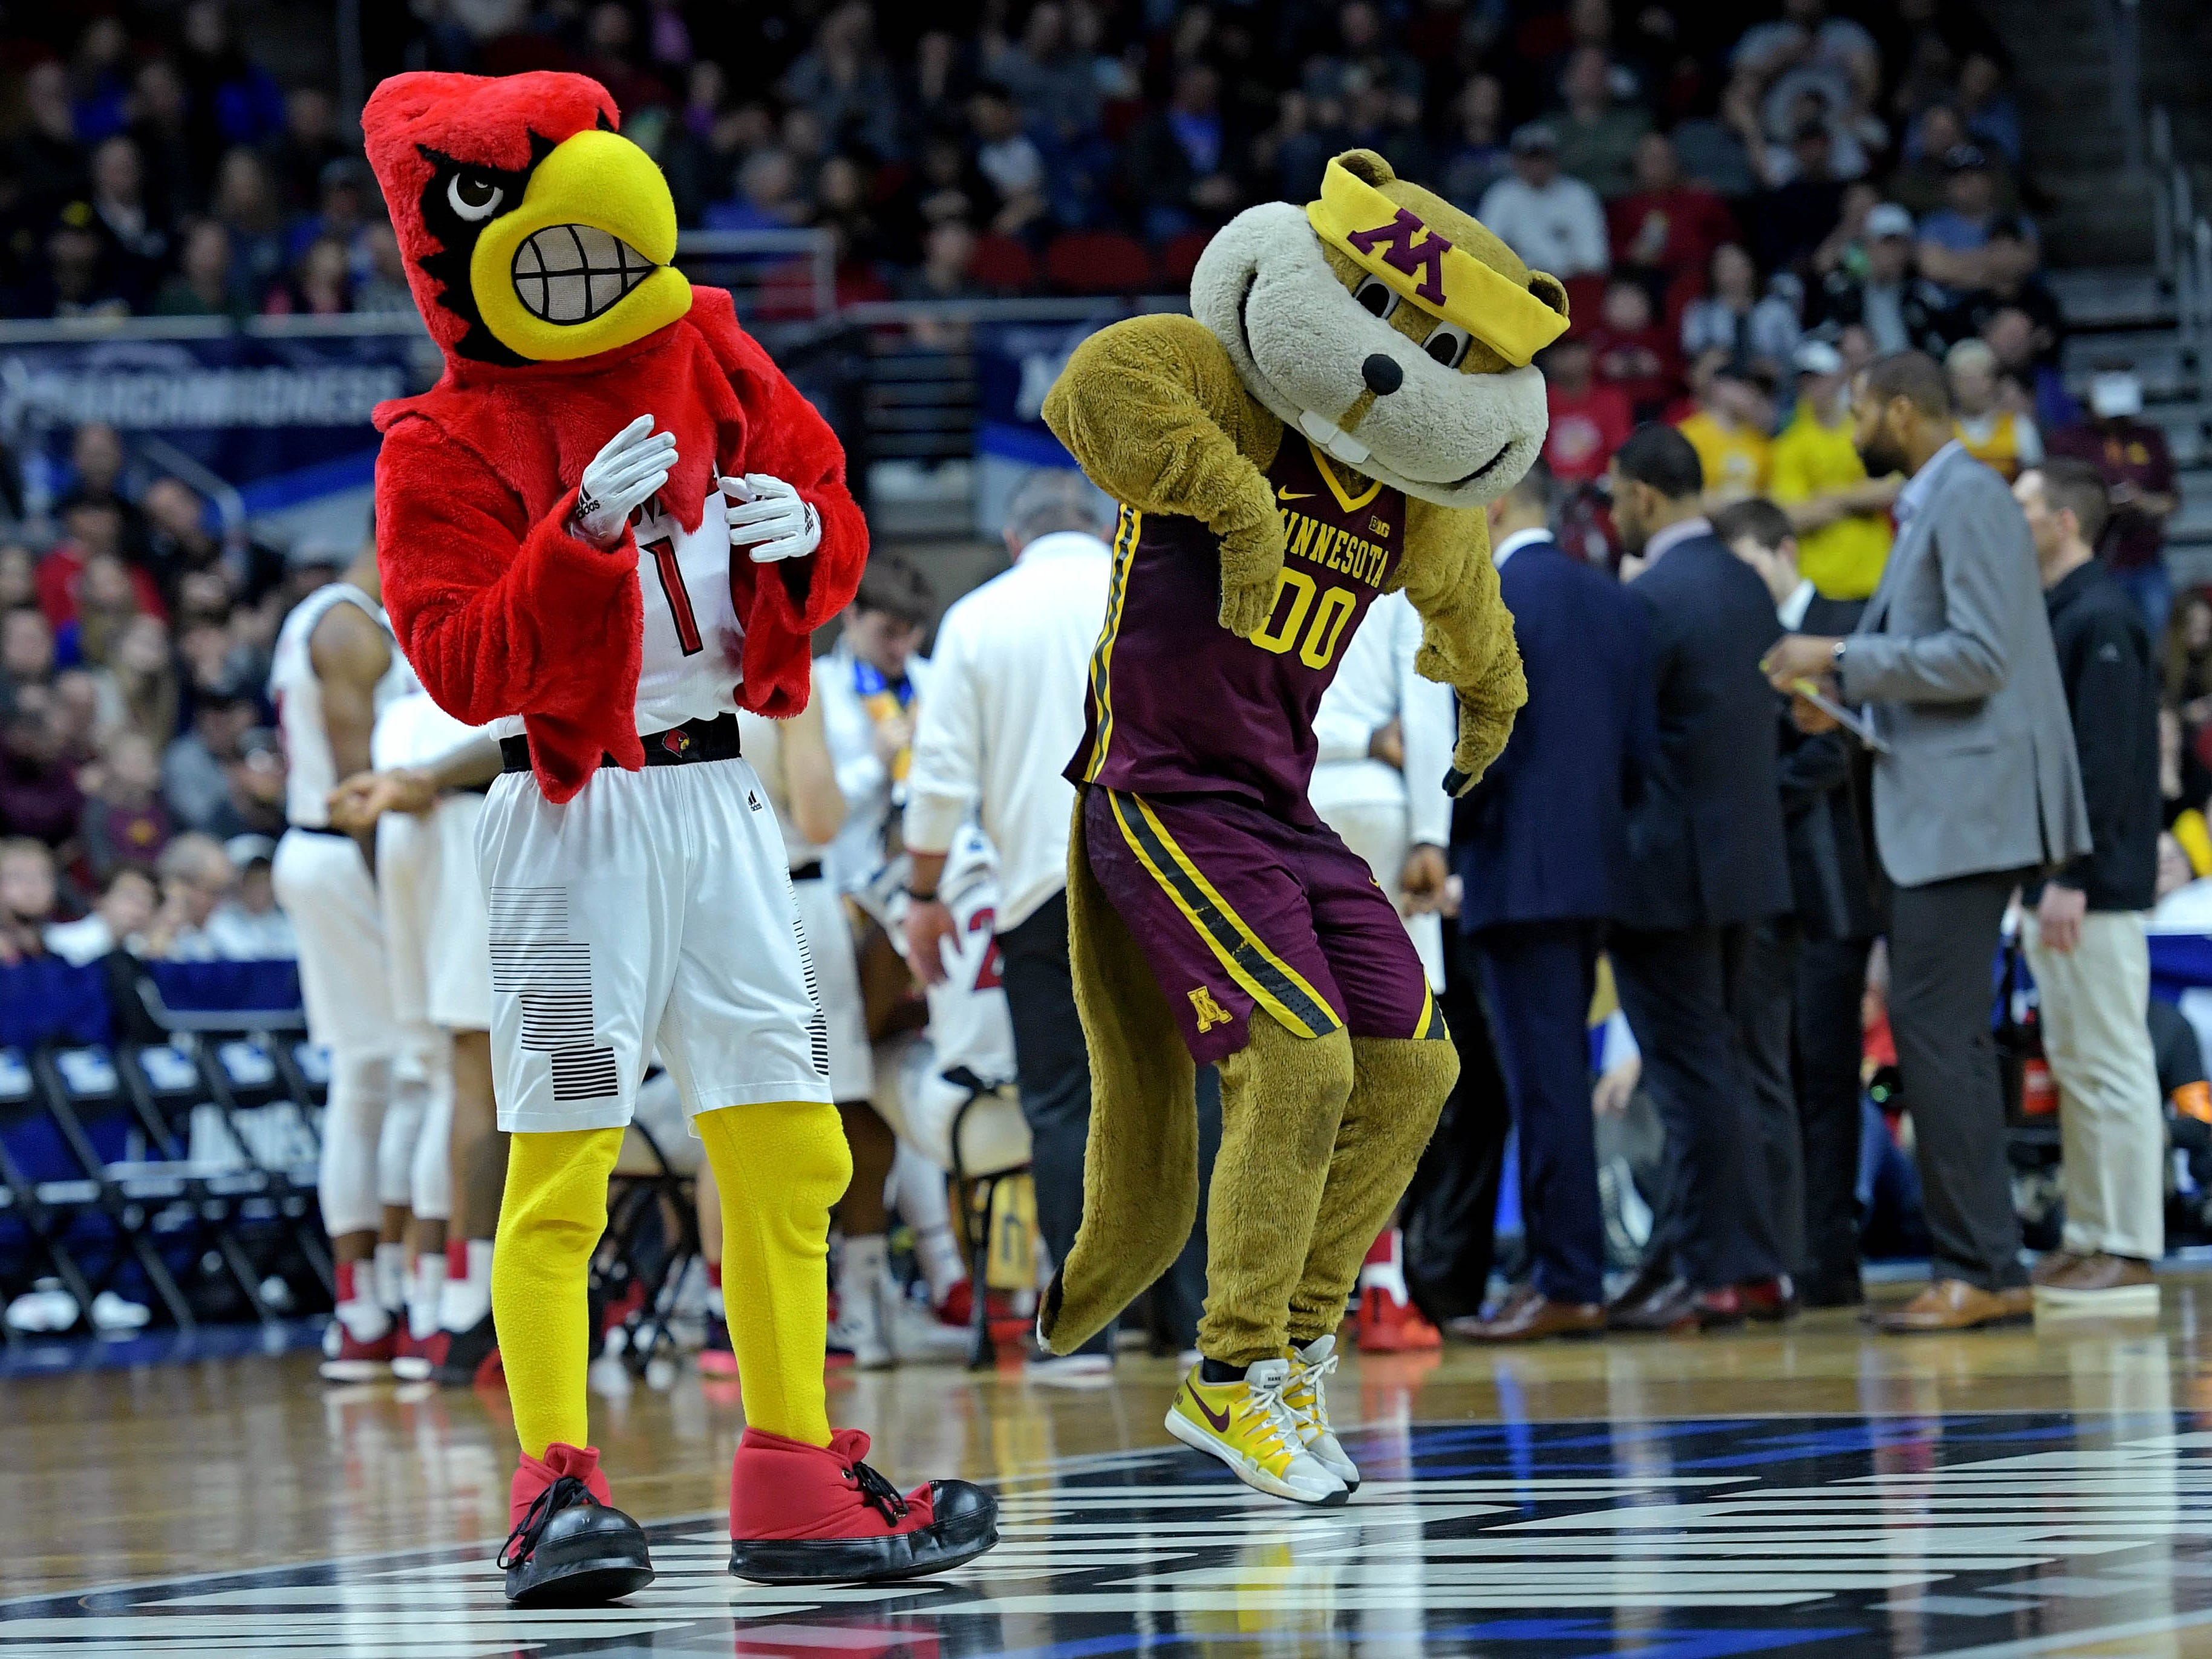 First round: The Louisville Cardinals mascot and the Minnesota Golden Gophers mascot dance on the court.